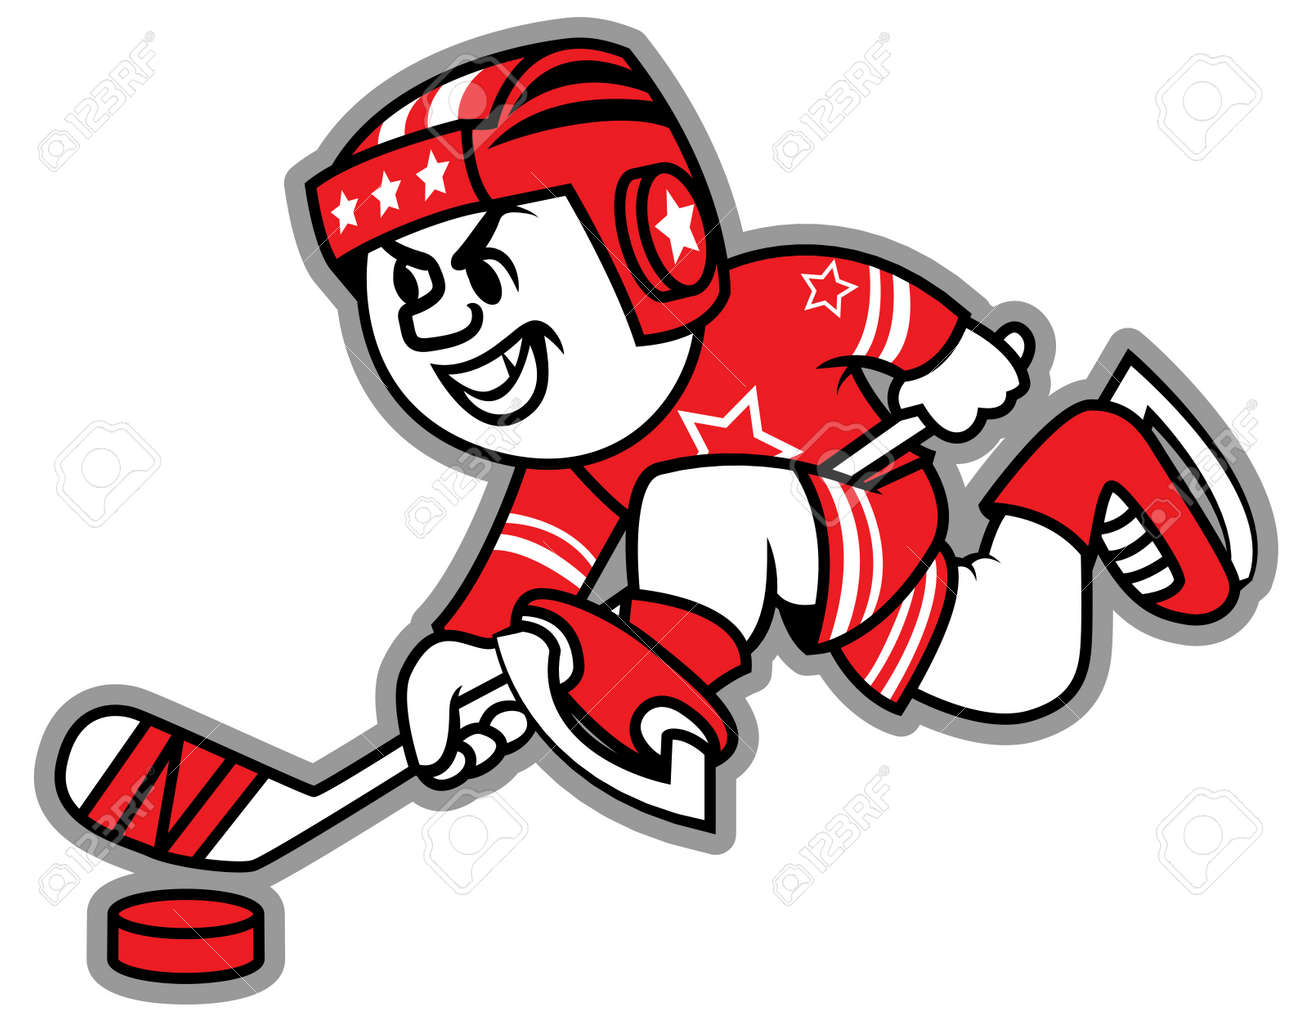 Ice hockey leading the puck. May be a logo and mascot team. Stock Vector - 17933473